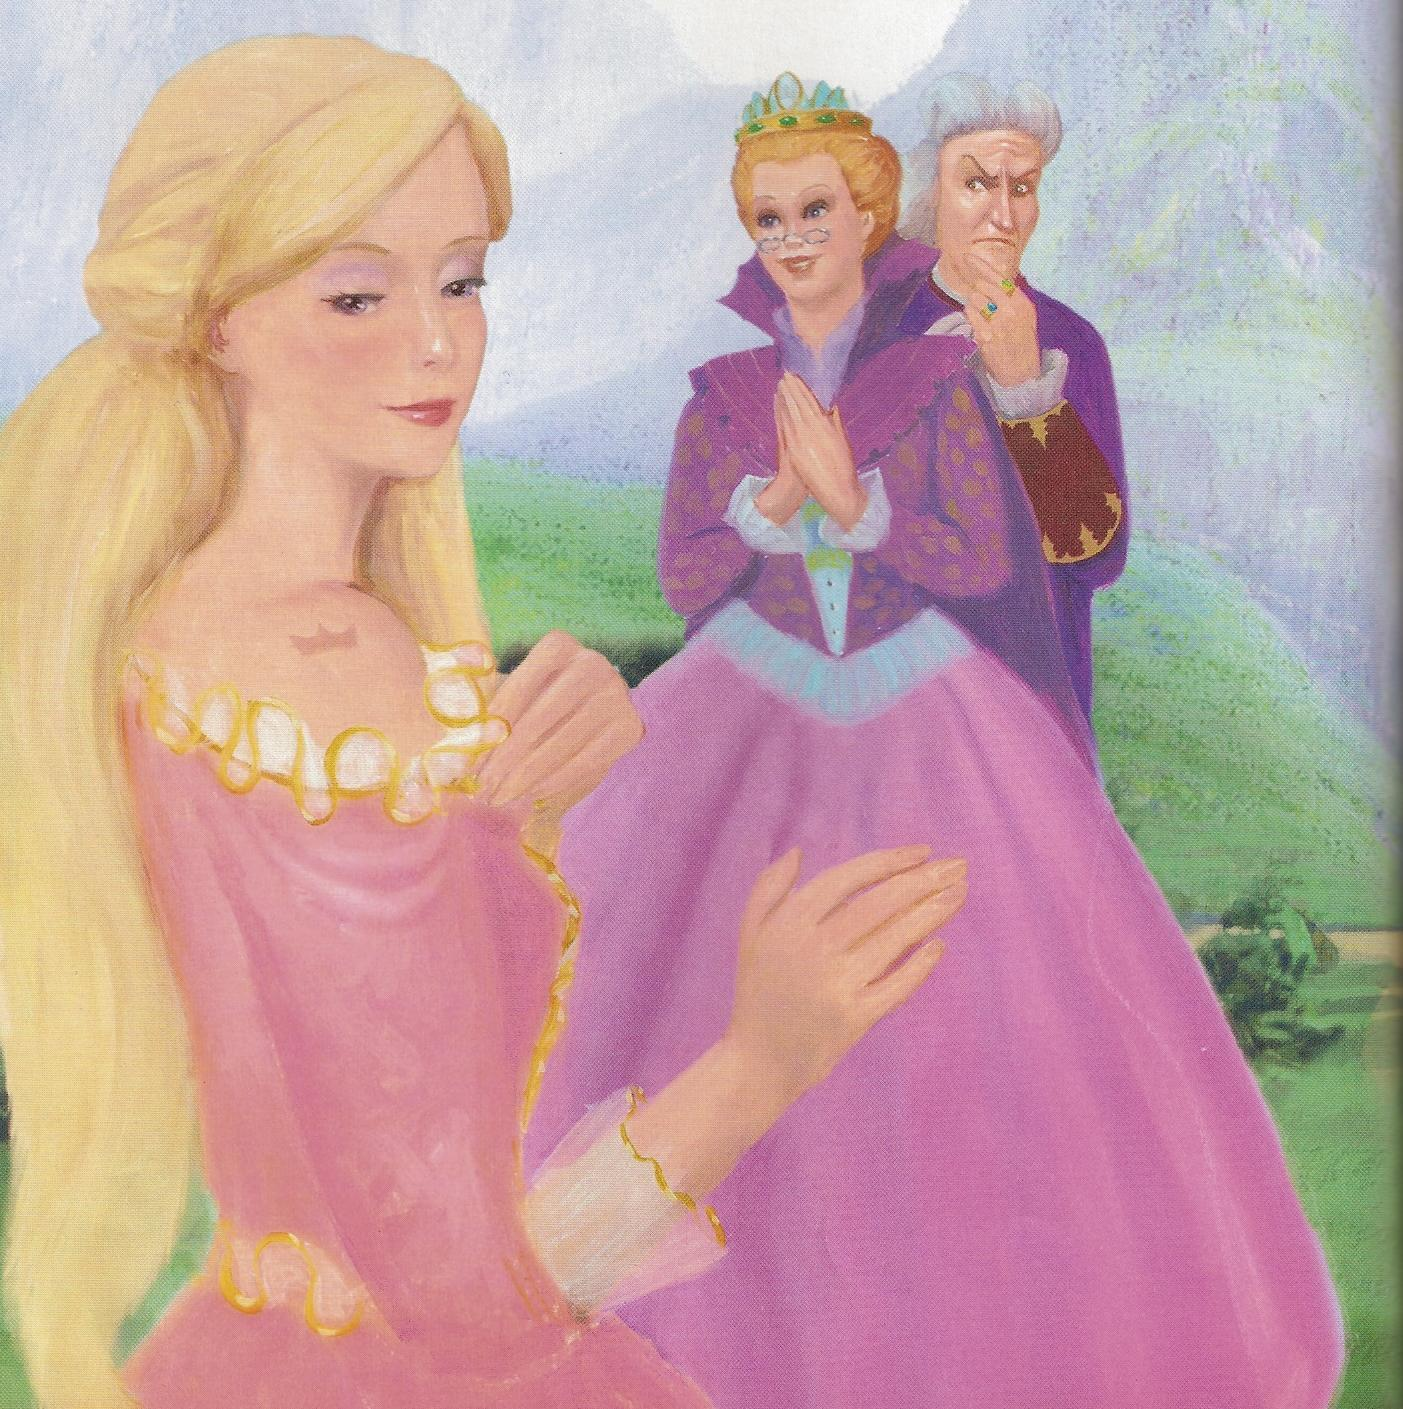 Barbie Princess And The Pauper Images Princess And The Princess And The Pauper